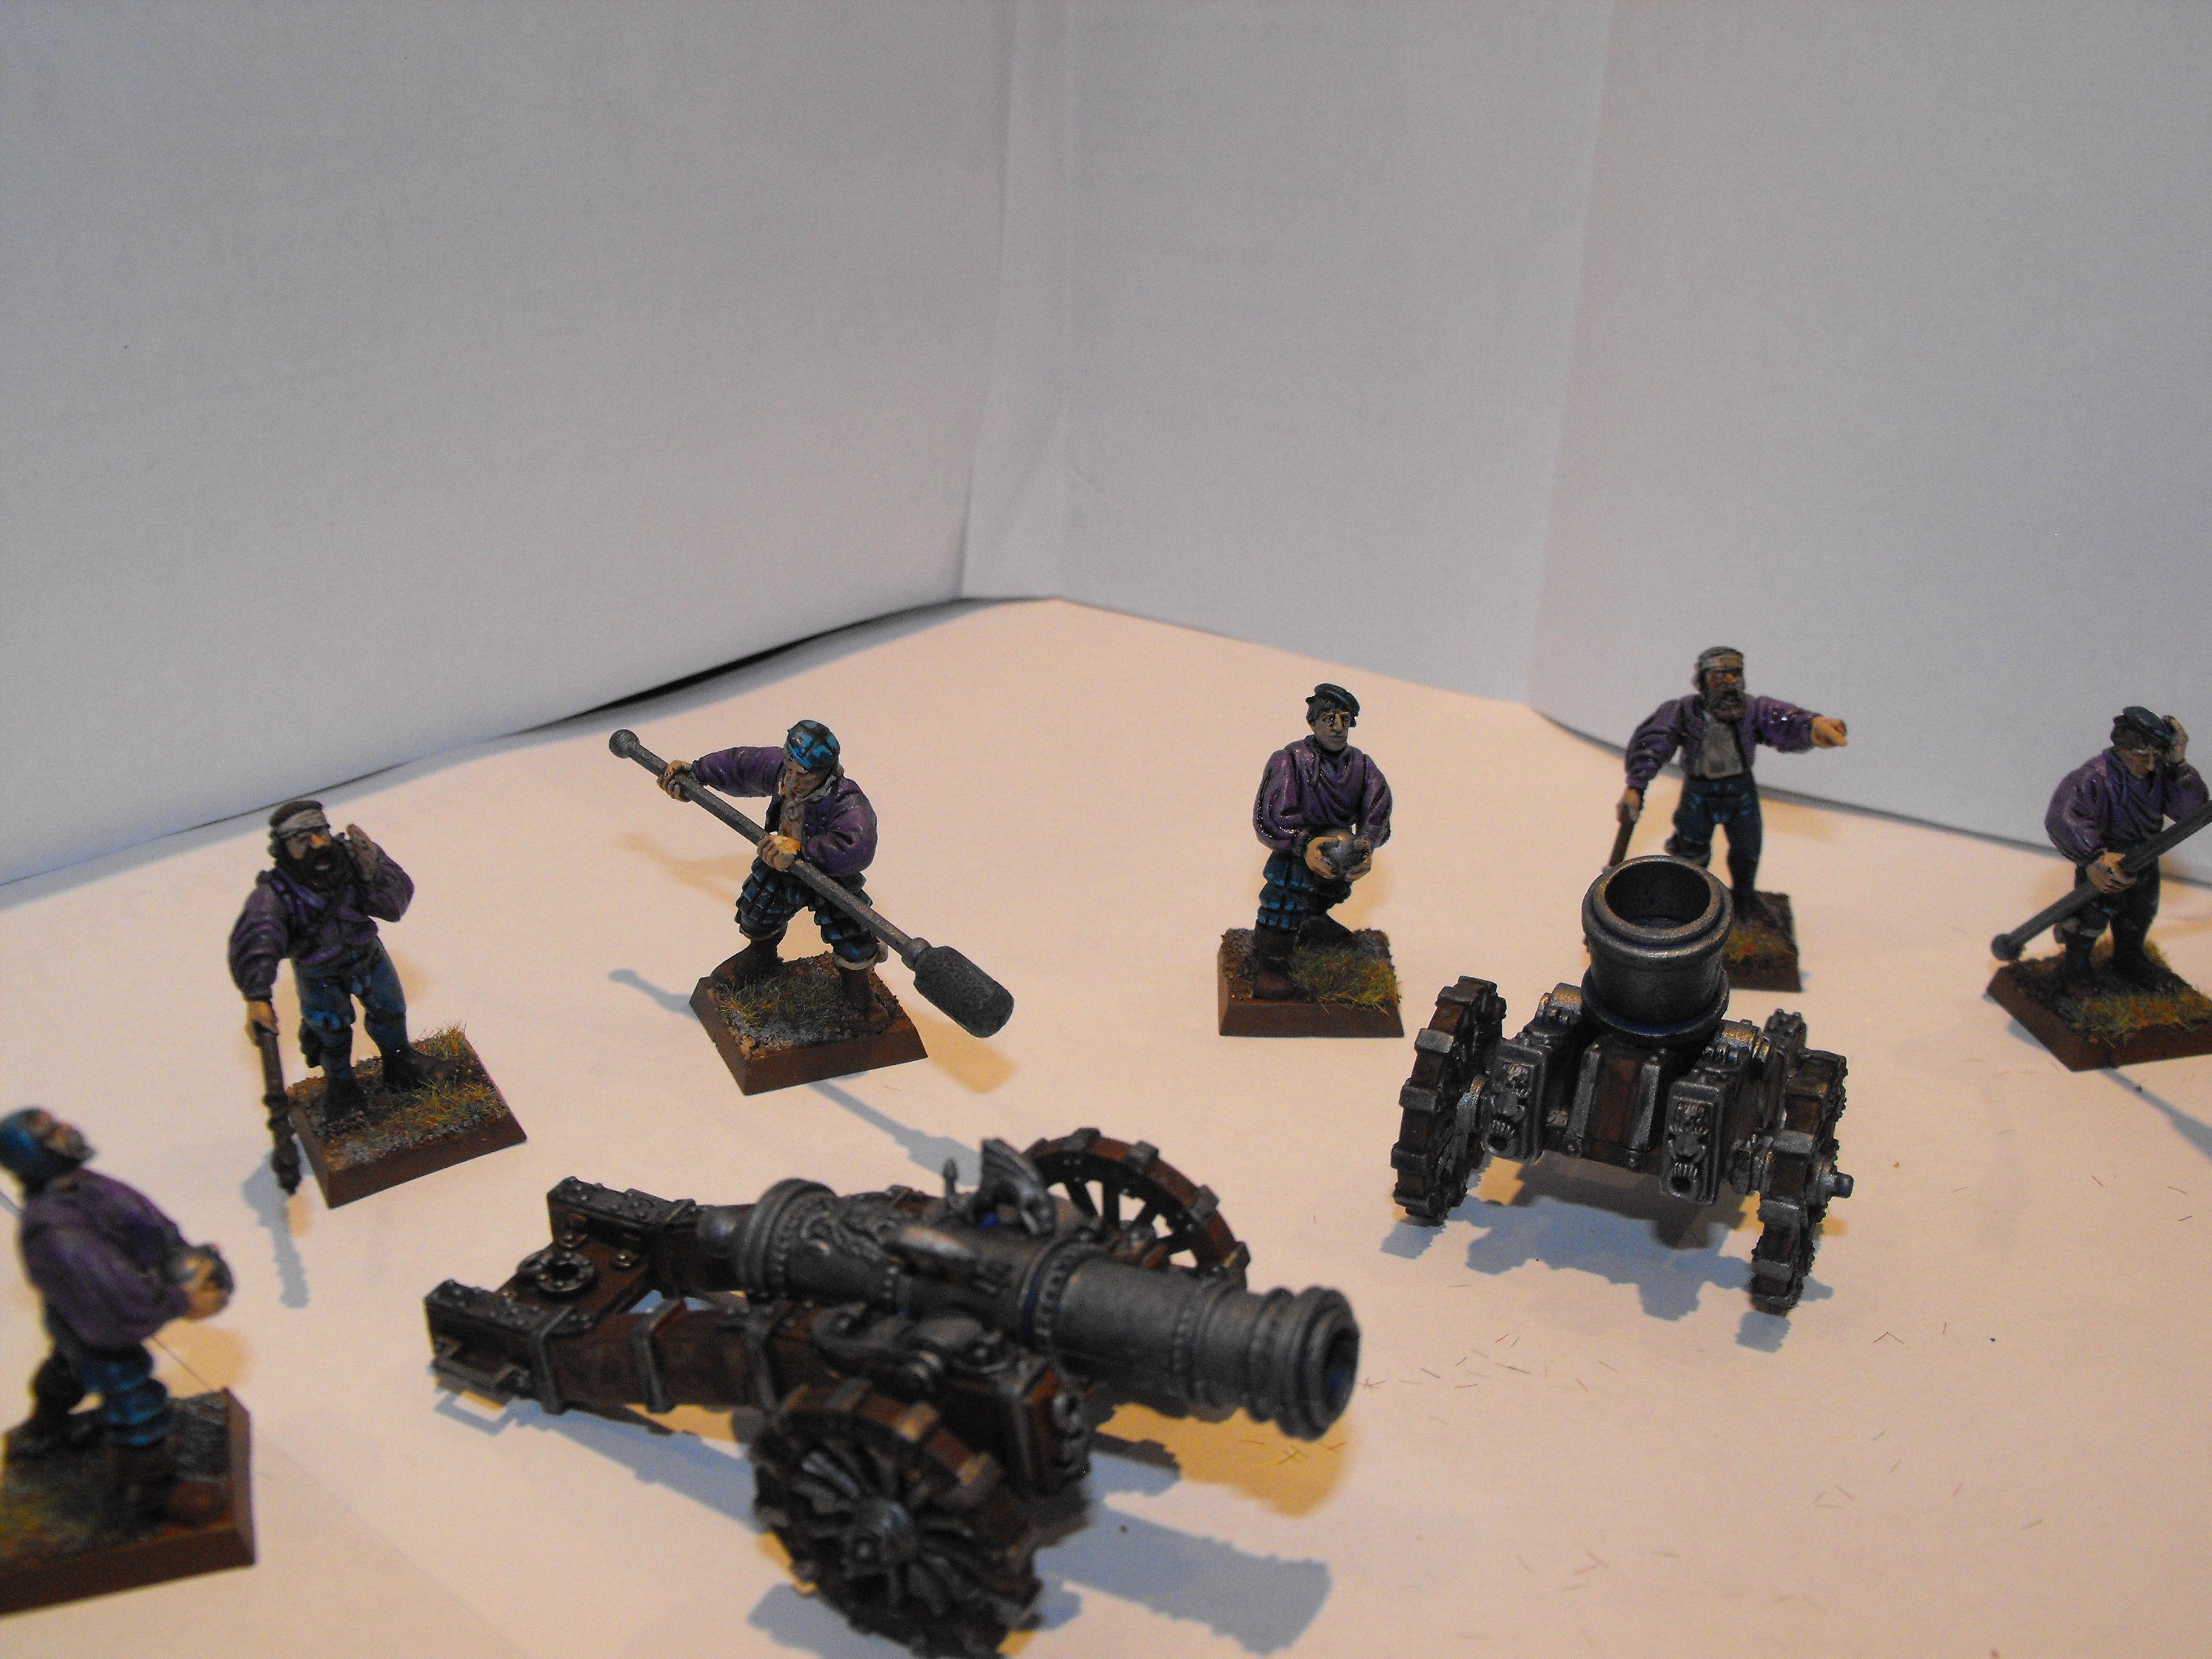 and a comparrison next to my cannon